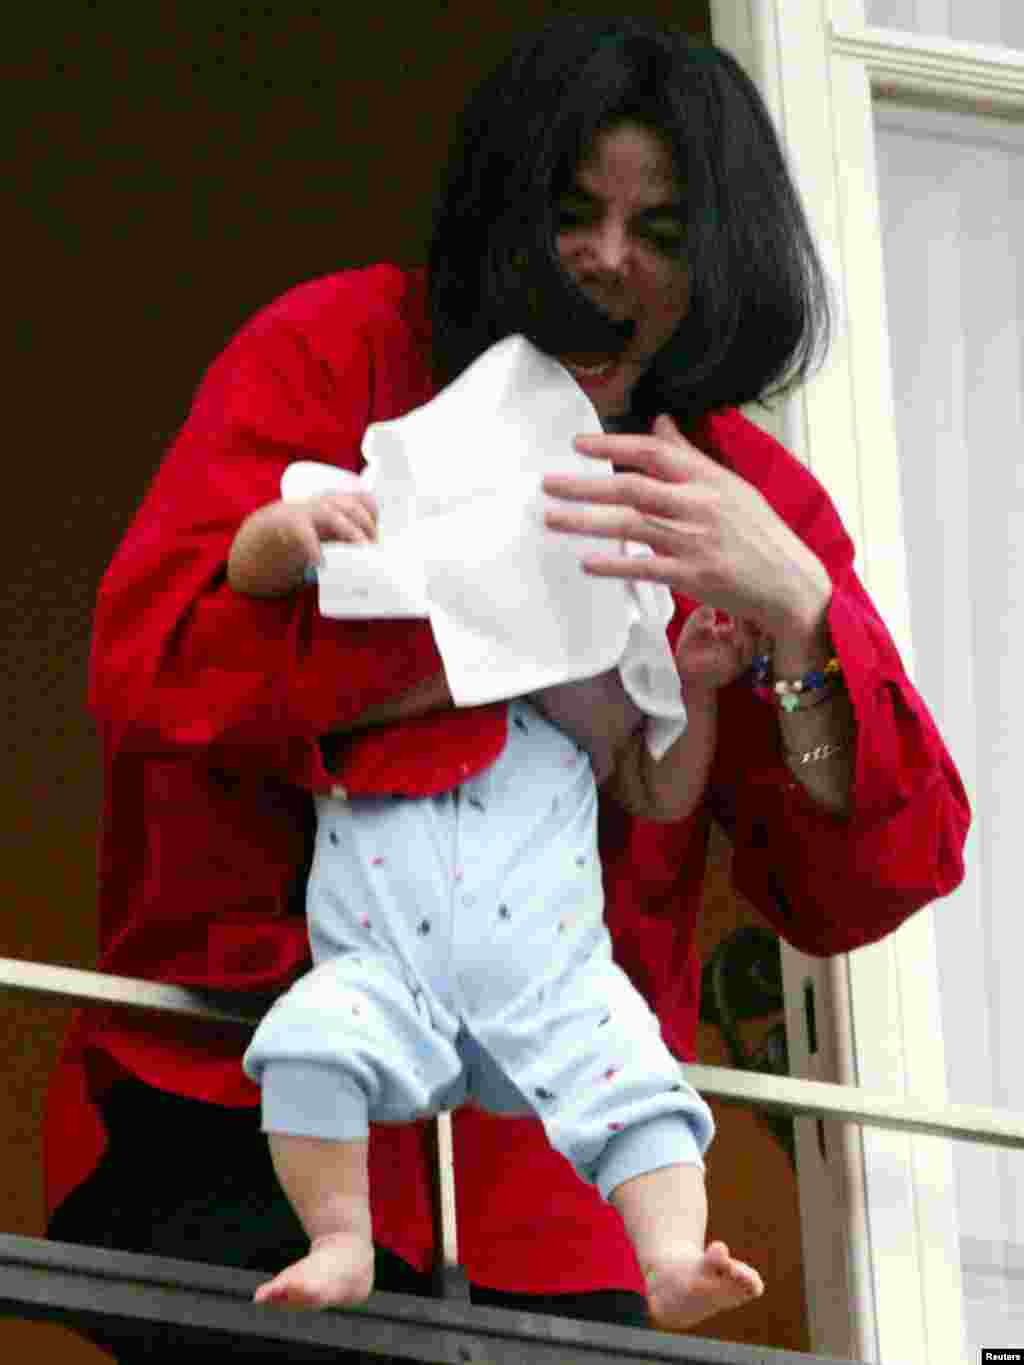 Entertainer and popstar Michael Jackson holds an unidentified child, covered with a towel, as he looks down to fans out of a window after he arrived at a Berlin hotel November 19, 2002. Michael Jackson was in Berlin to be awarded with the prestigious Bambi 2002 media award for his lifetime achievement. REUTERS/Tobias Schwarz